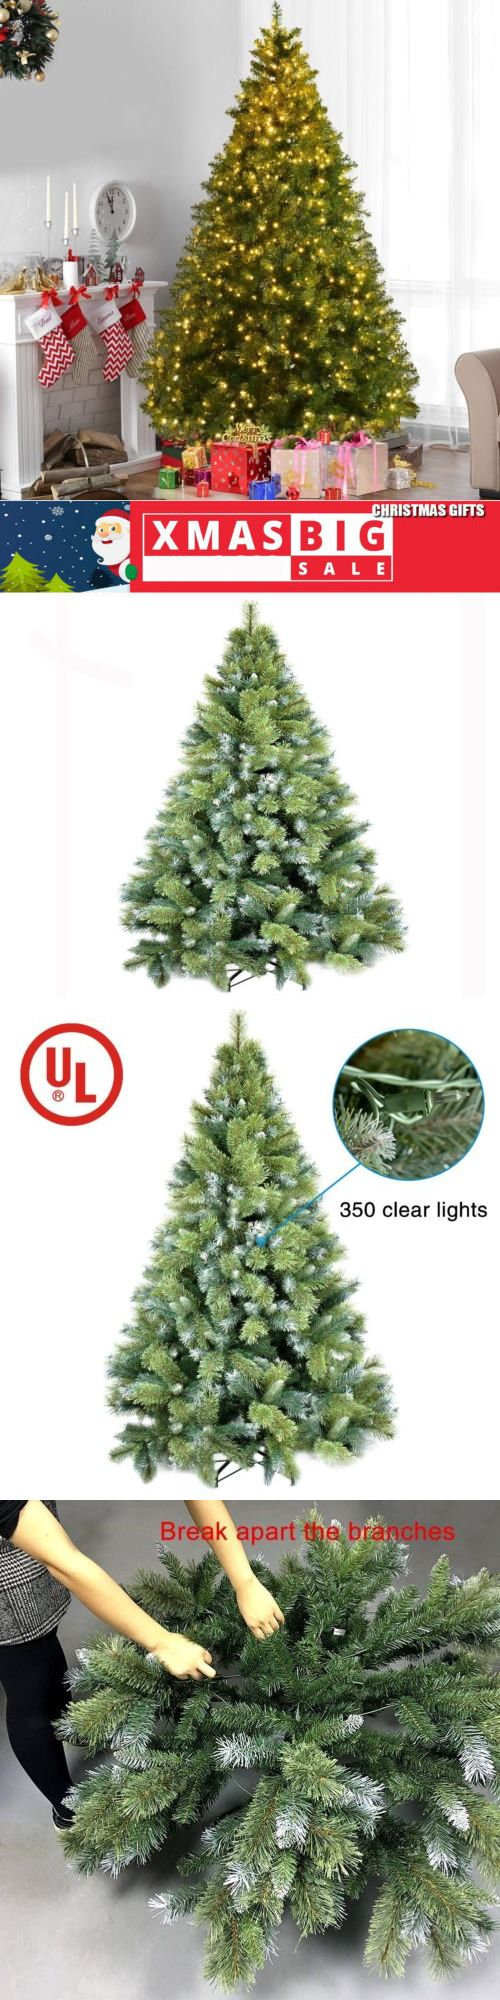 6FT Pre-lit Green Pine Christmas Tree with 250 Clear Lights PVC and Stand New